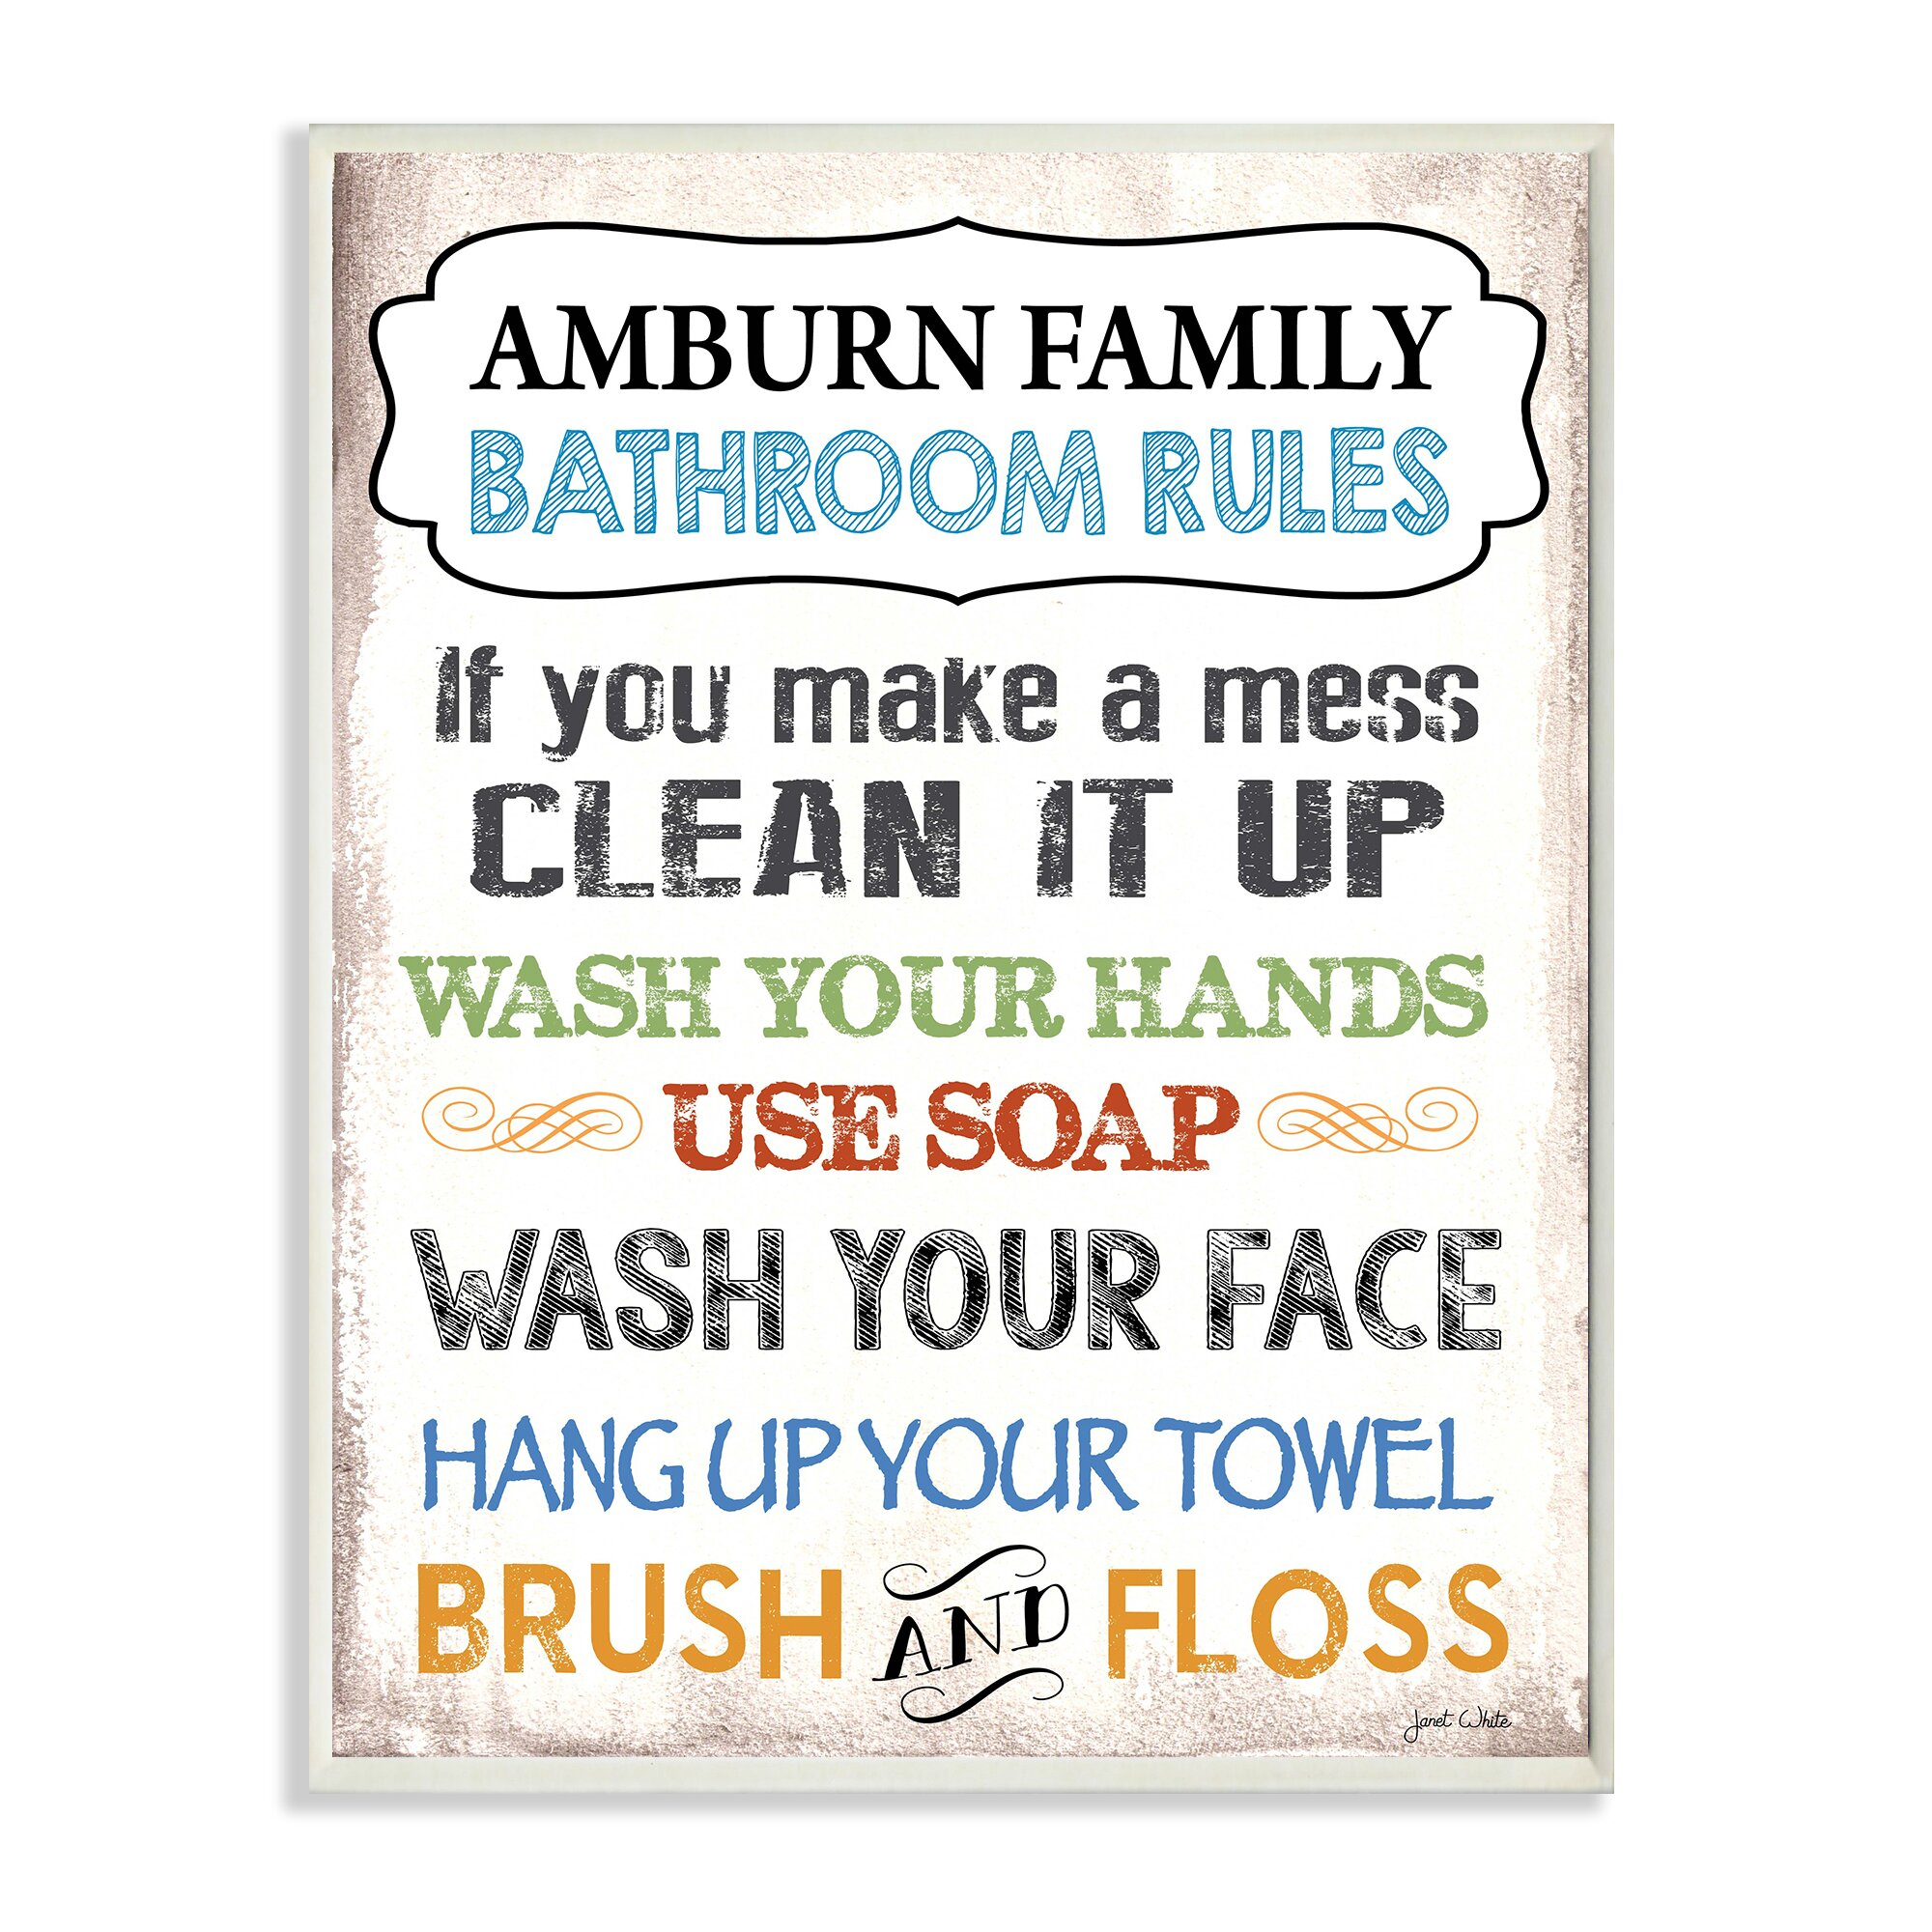 Stupell Industries Personalized Bathroom Rules Rainbow by Janet. Bathroom Plaque